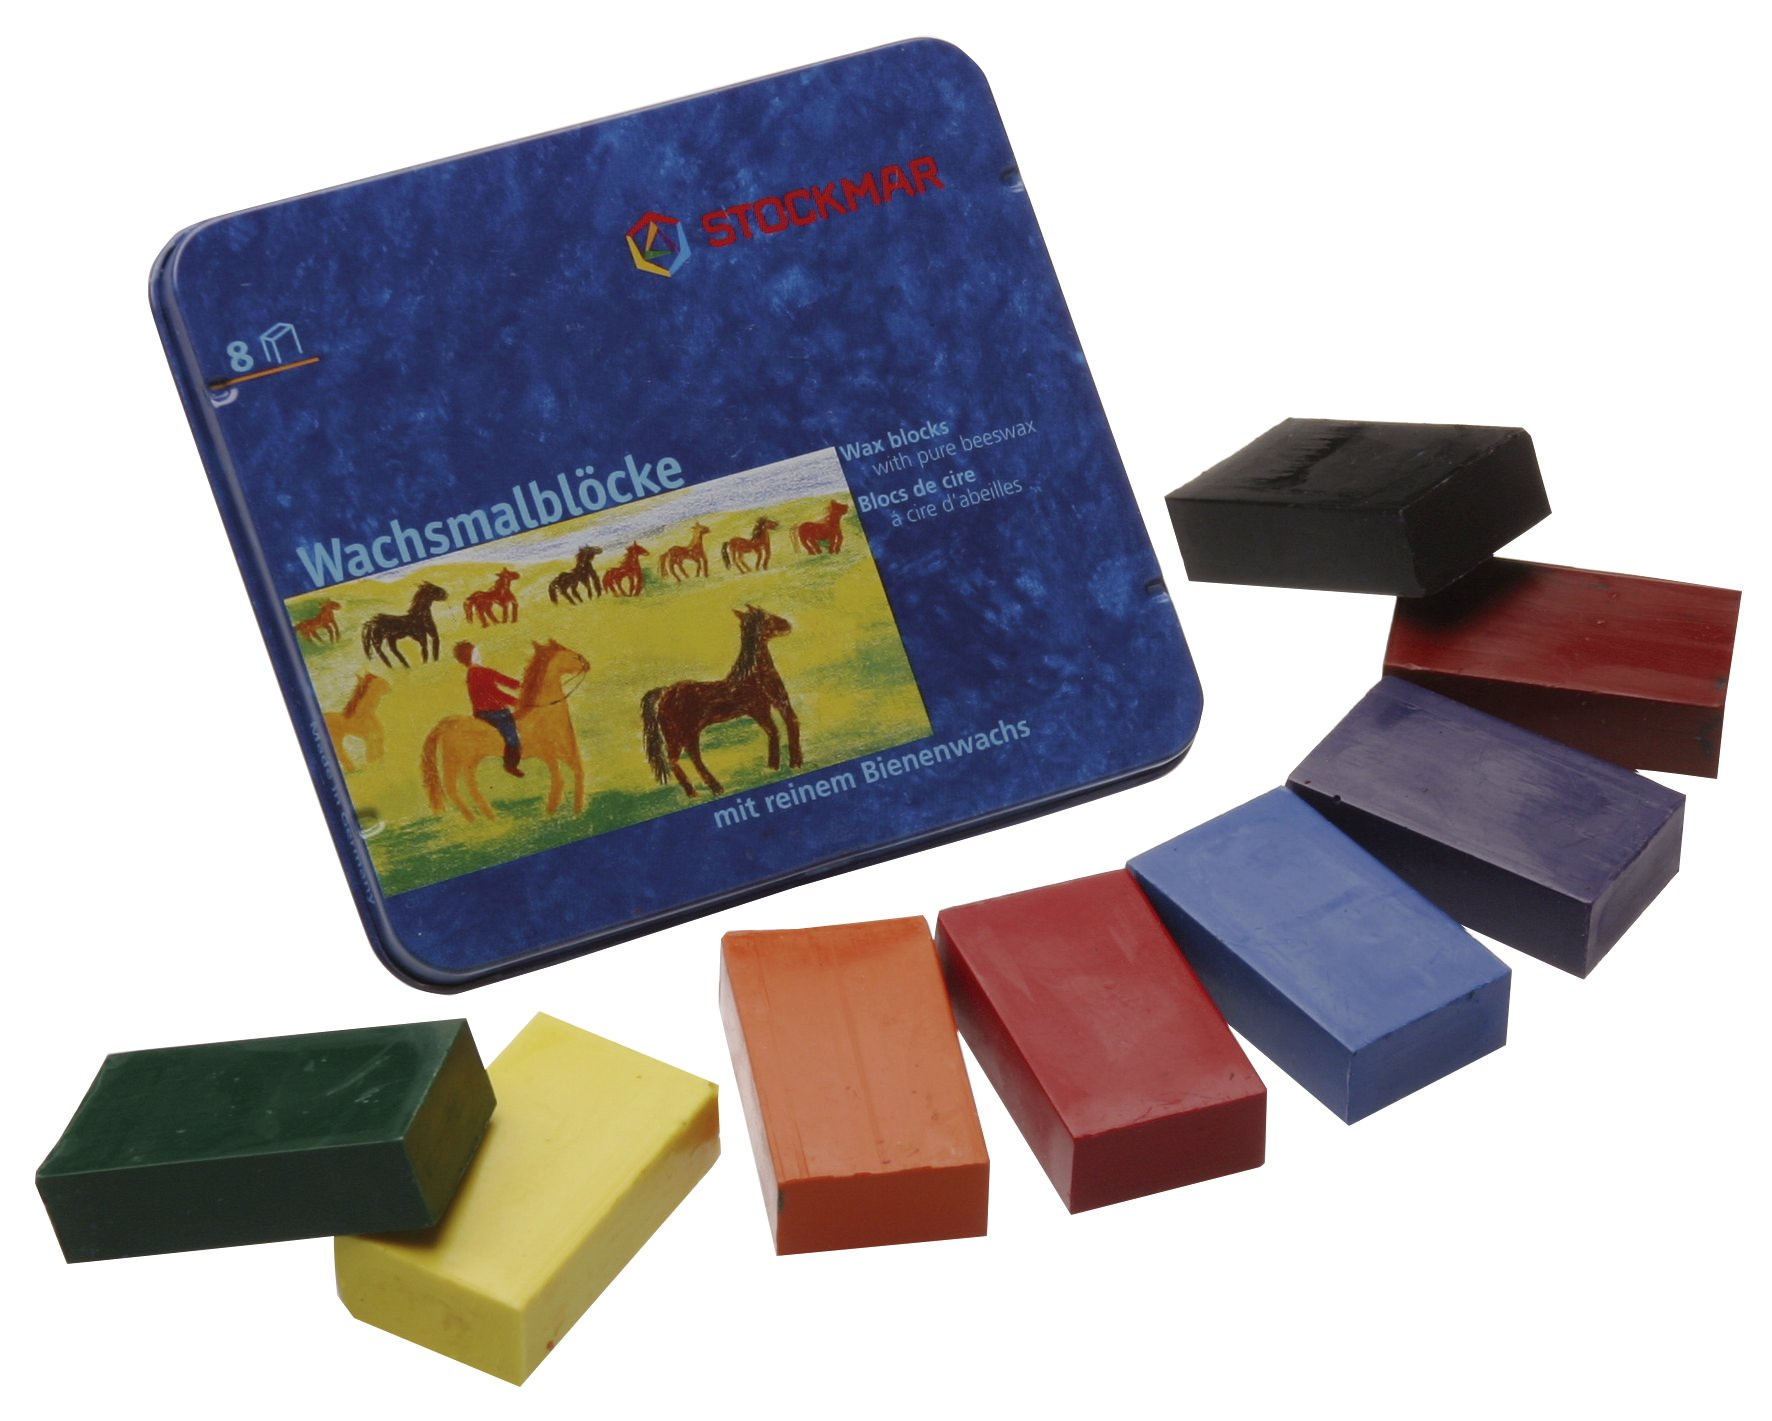 Stockmar Beeswax Block Crayons - 8 Standard Colours in a Tin by Stockmar (Image #1)